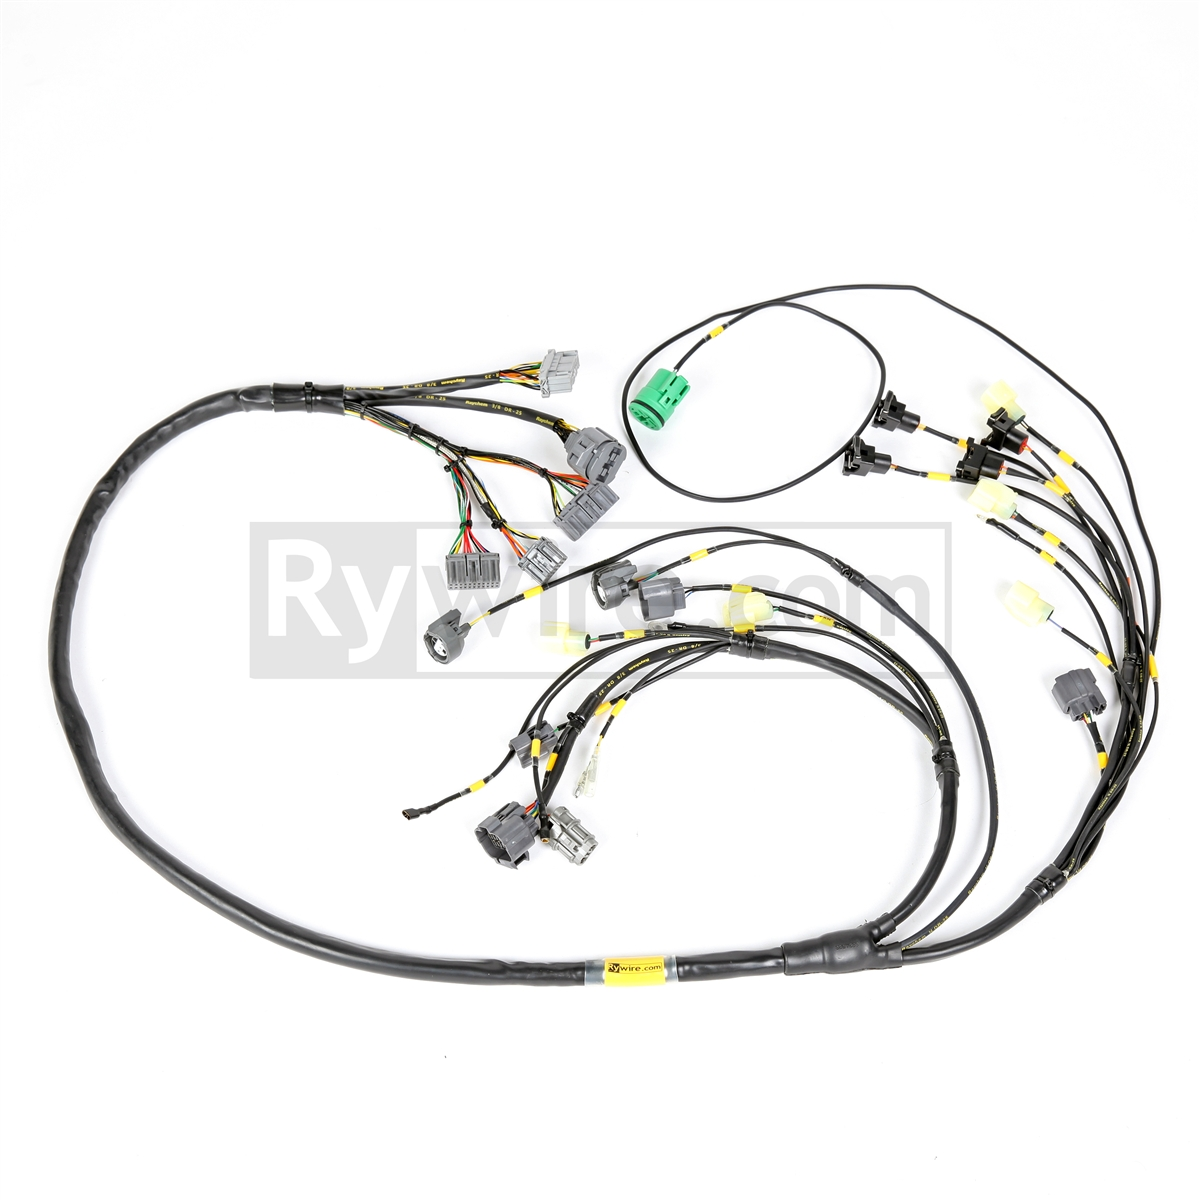 H22a Engine Wiring Harness | Wiring Diagram on